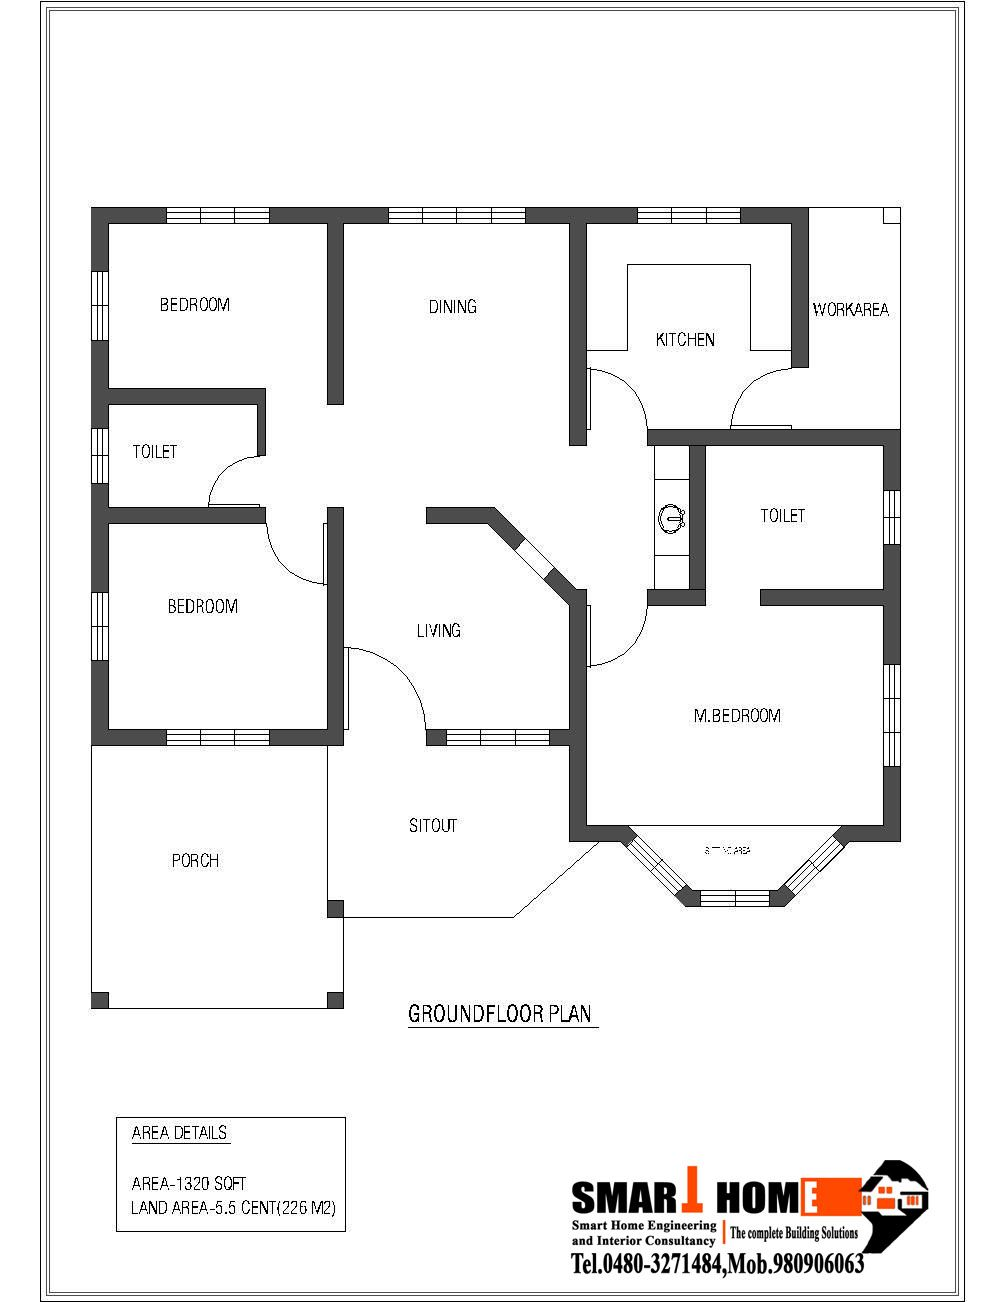 1320 sqft kerala style 3 bedroom house plan from smart Floor plan of a 3 bedroom house